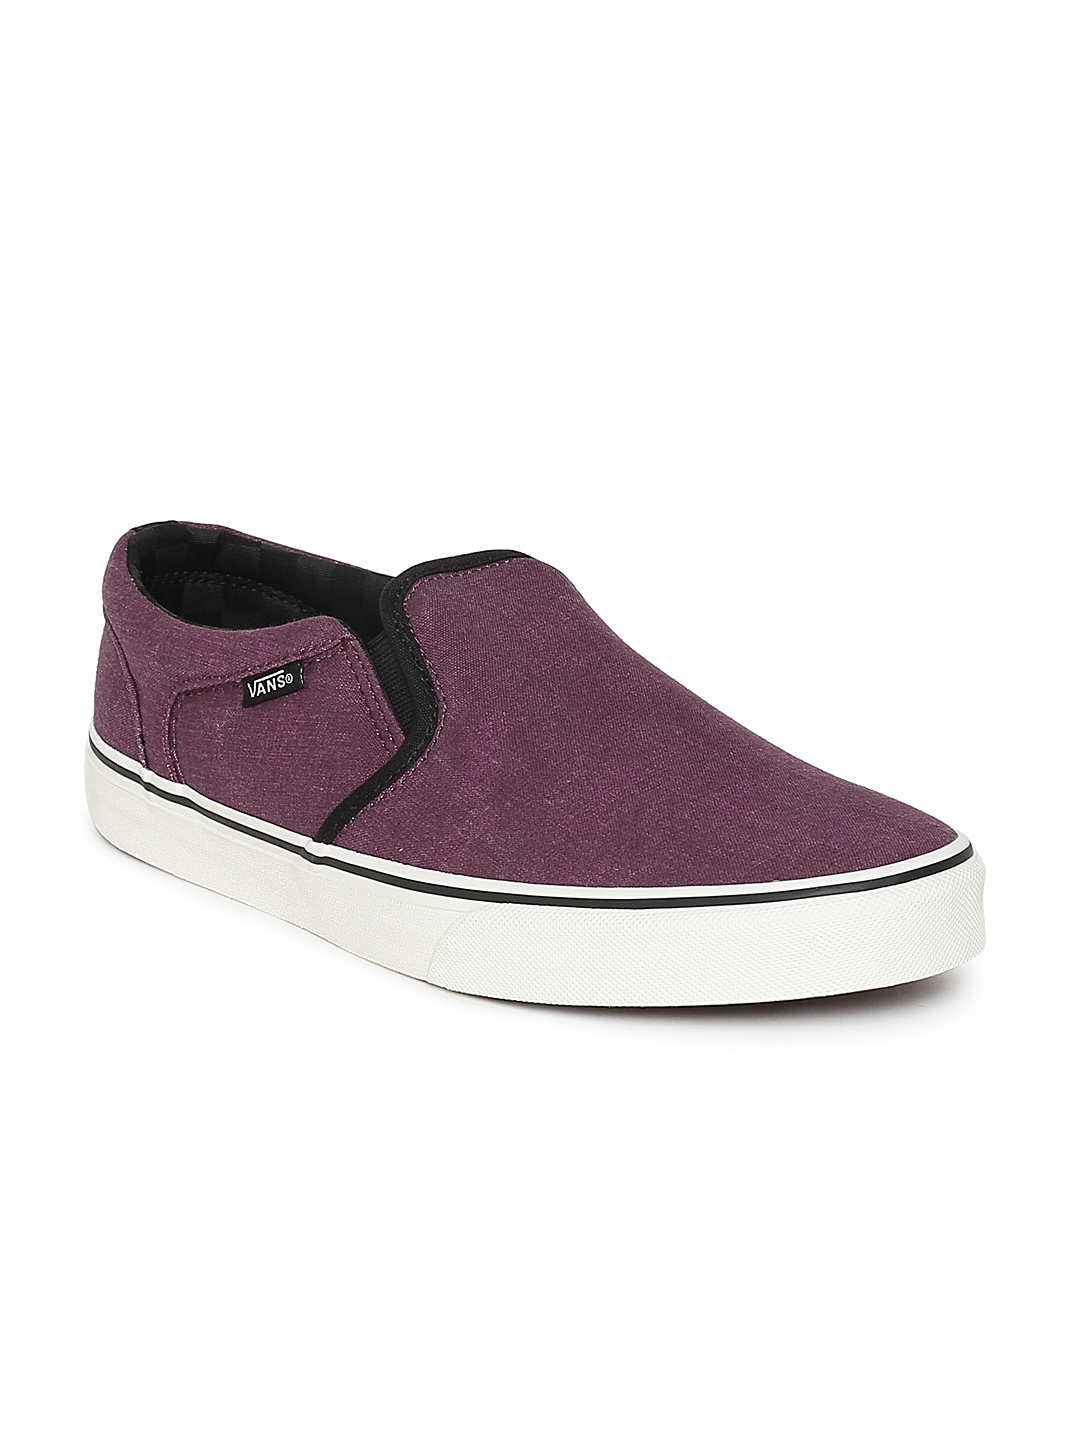 bf1f2095a6 Buy Vans Men Maroon Asher Slip On Sneakers - Casual Shoes for Men ...